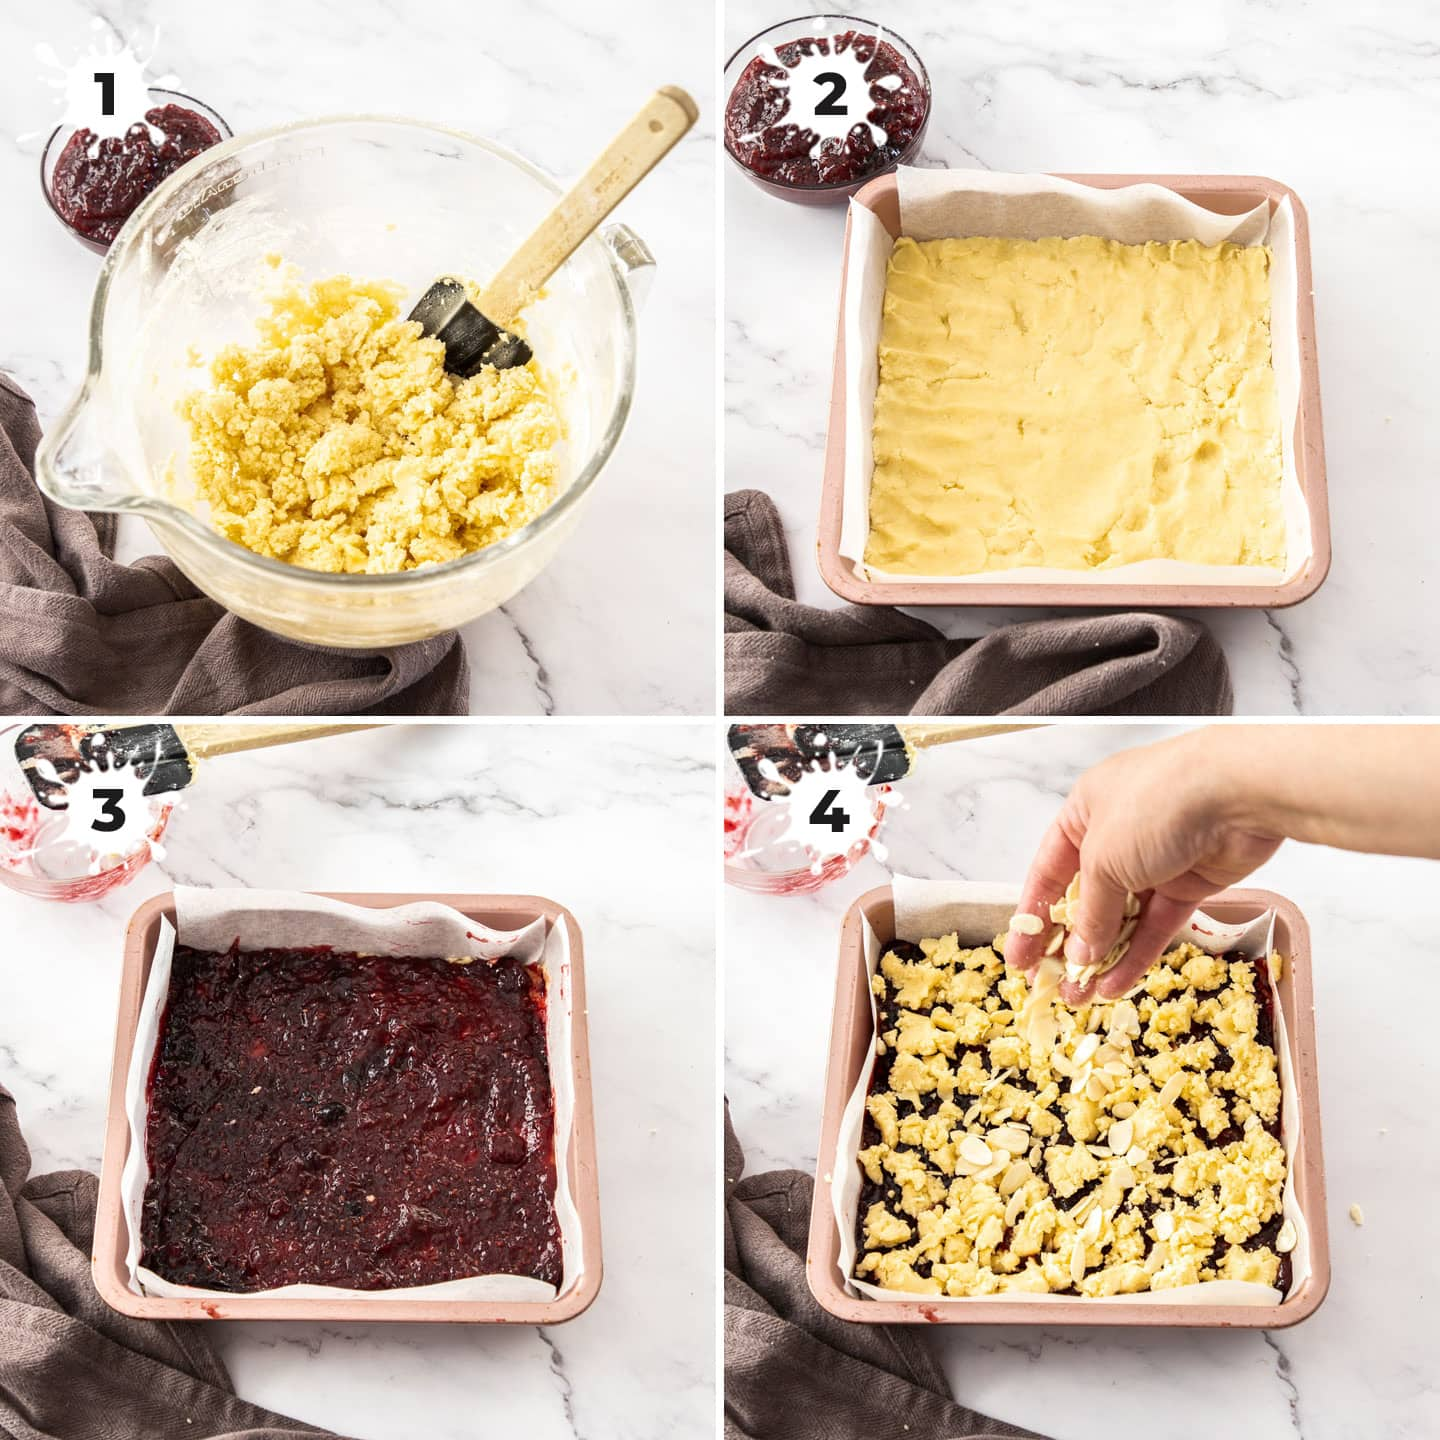 4 images showing how to make raspberry shortbread bars.